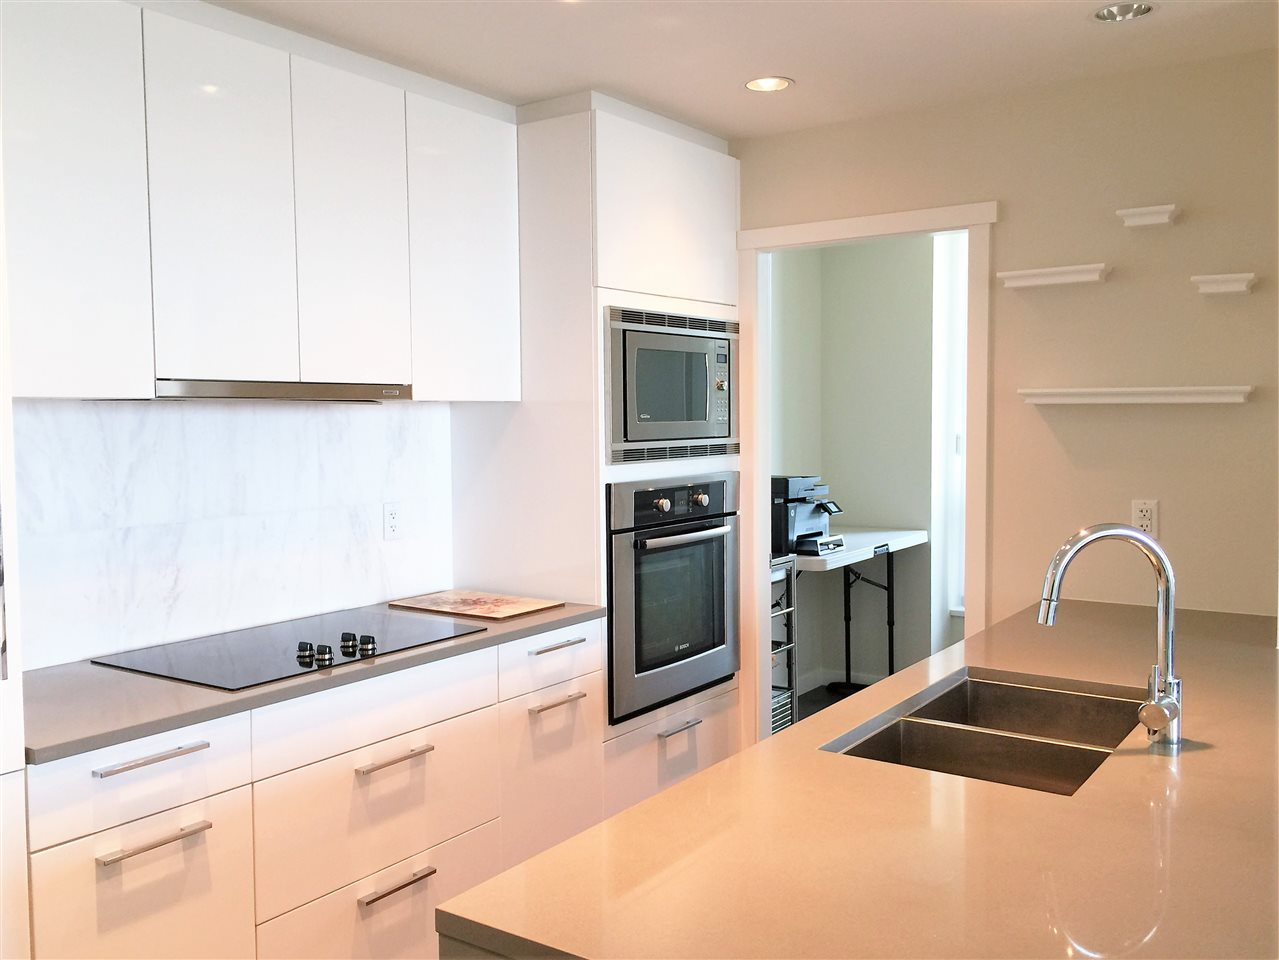 Photo 4: 1802 5728 BERTON Avenue in Vancouver: University VW Condo for sale (Vancouver West)  : MLS® # R2049668